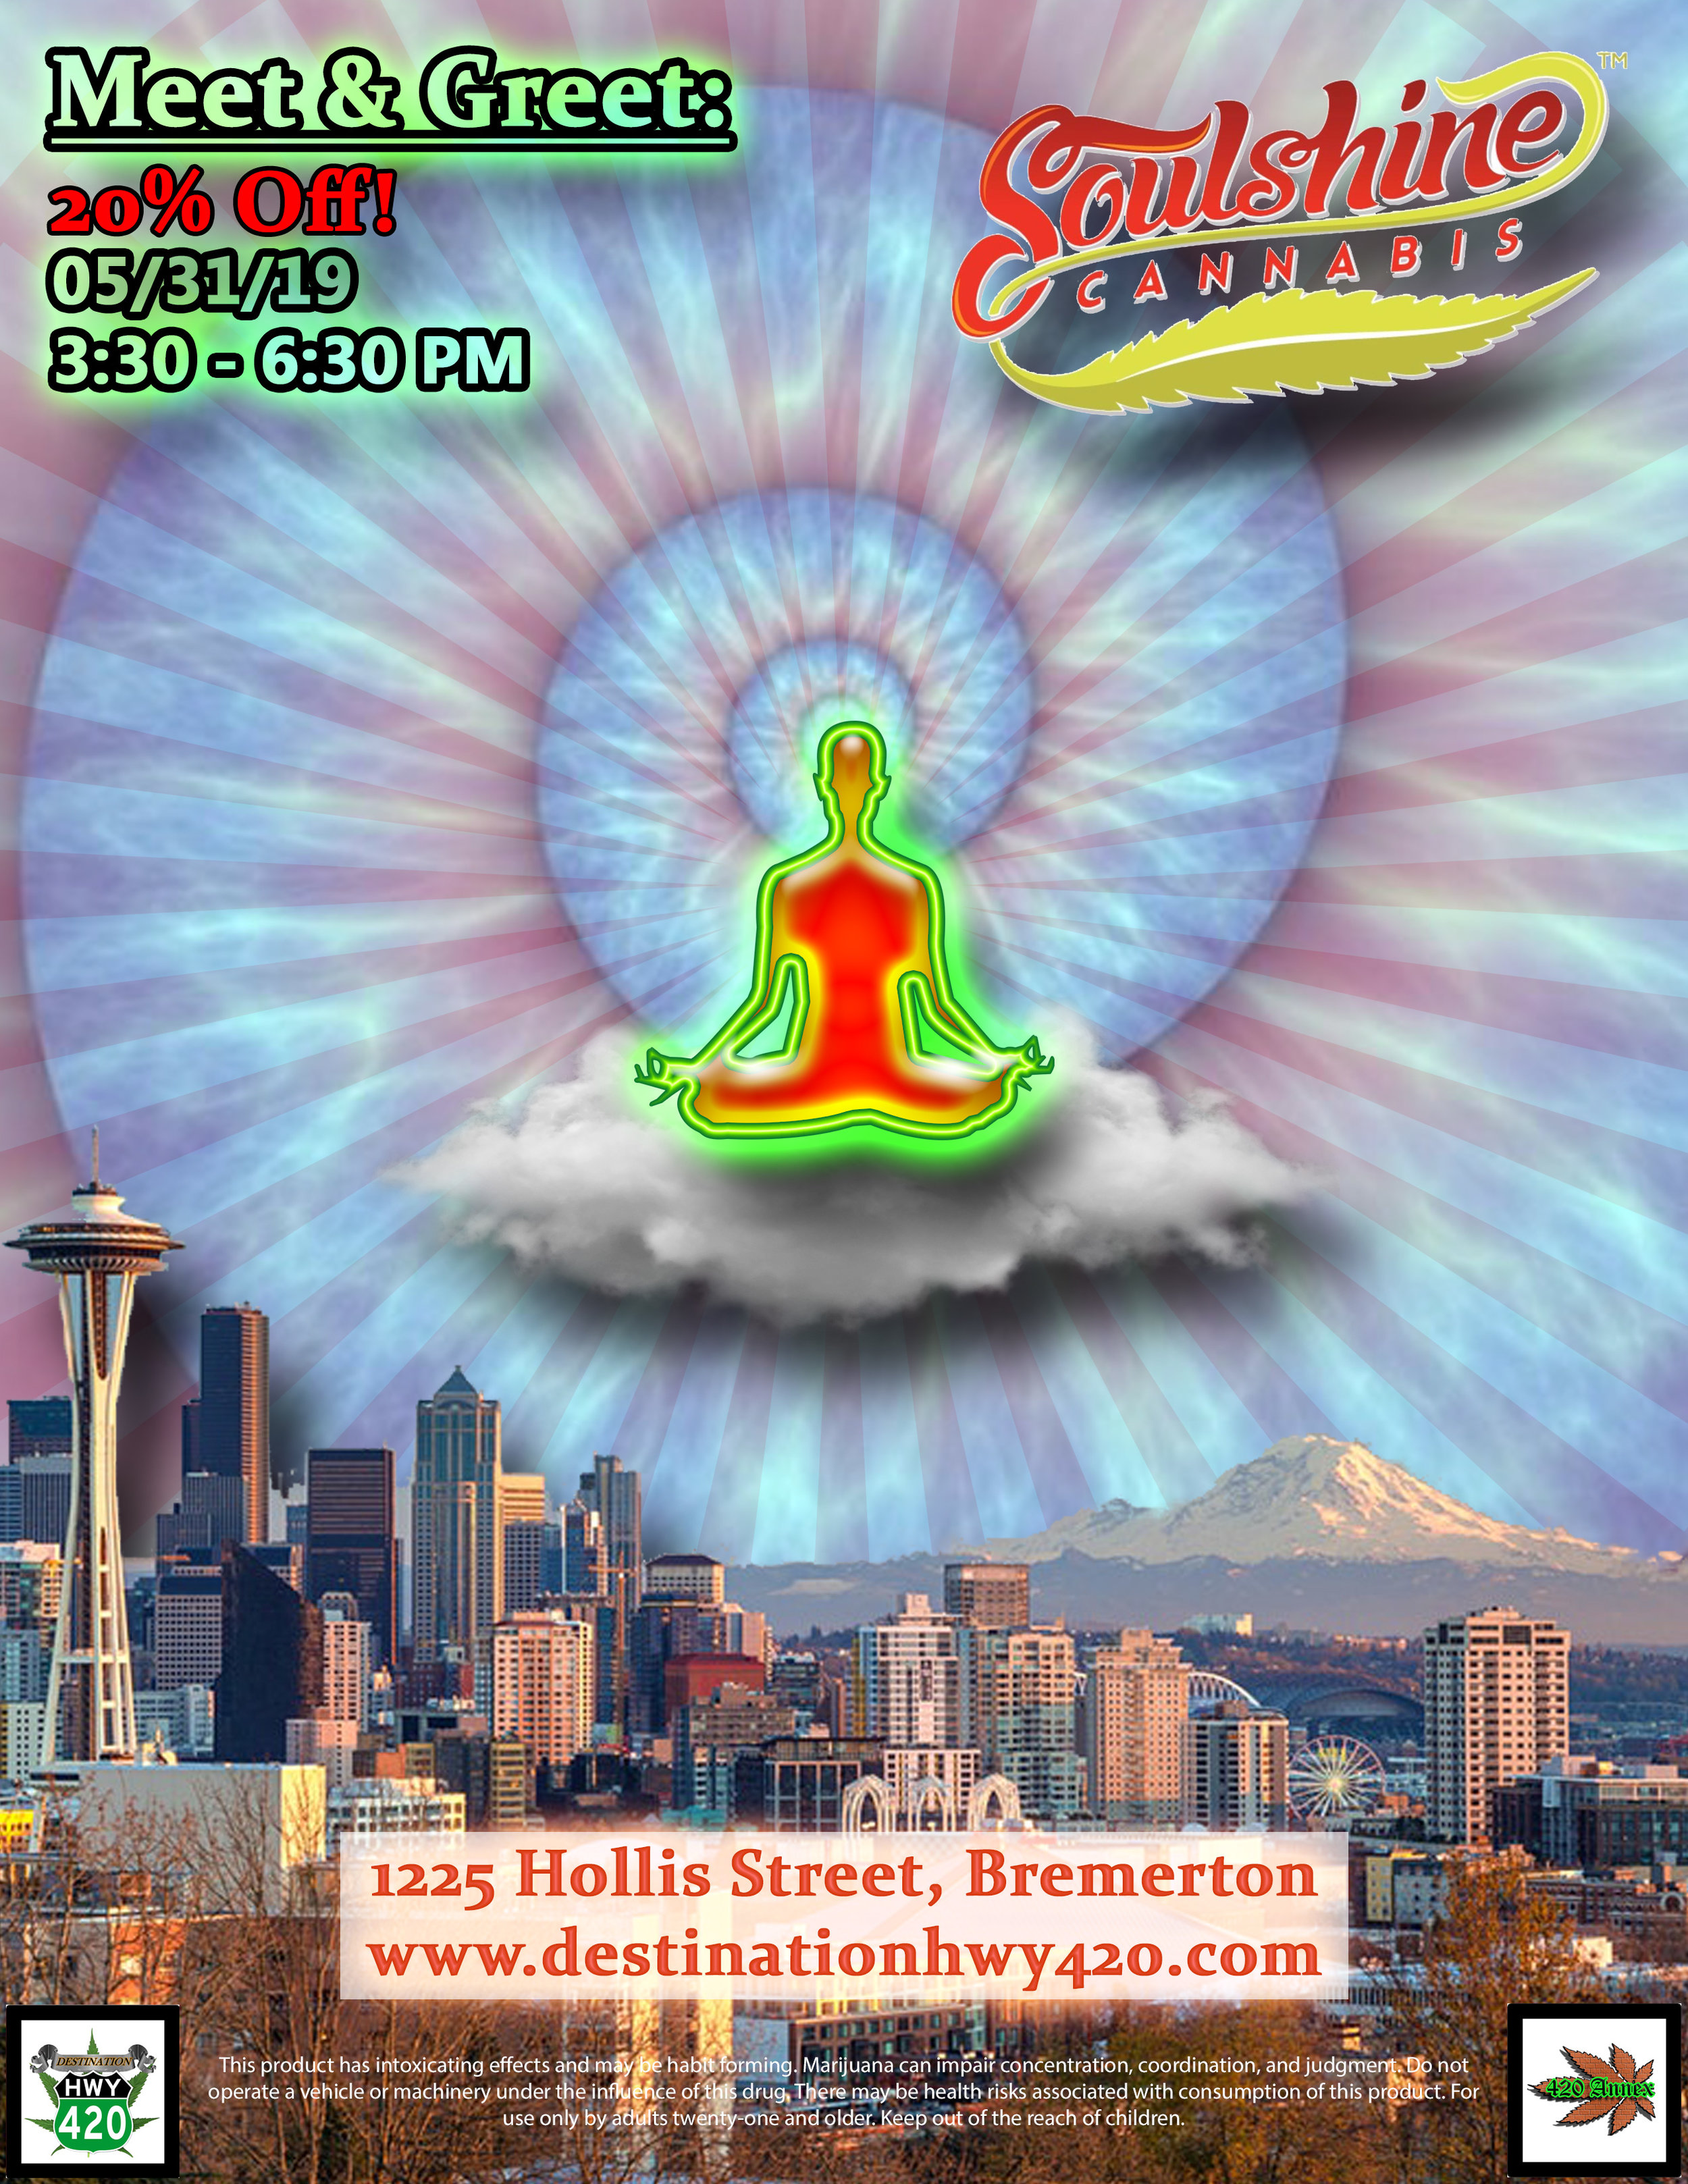 Soulshine Cannabis is an environmentally conscious top shelf marijuana producer/processor located in Renton, WA. Soulshine will be at Destination HWY 420 this Friday for a Meet & Greet. Come on down and meet the Soulshine team and pick up some of their products for super low prices.